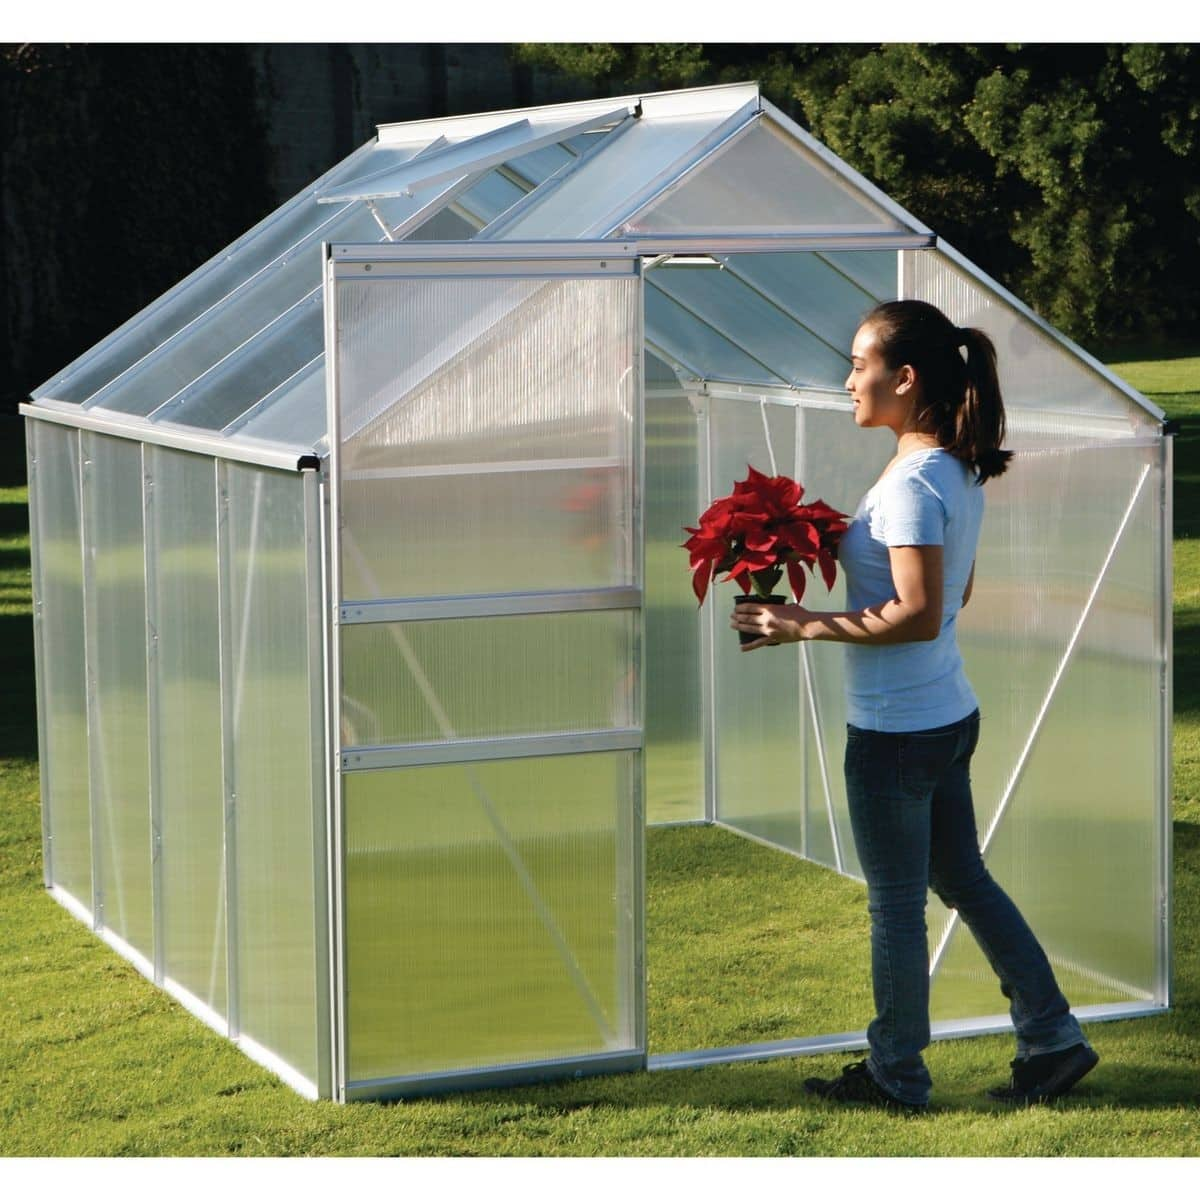 Harbor Freight ONE STOP GARDENS 6 Ft. X 8 Ft. Greenhouse $329.99 - $100 coupon for $229.99 before taxes